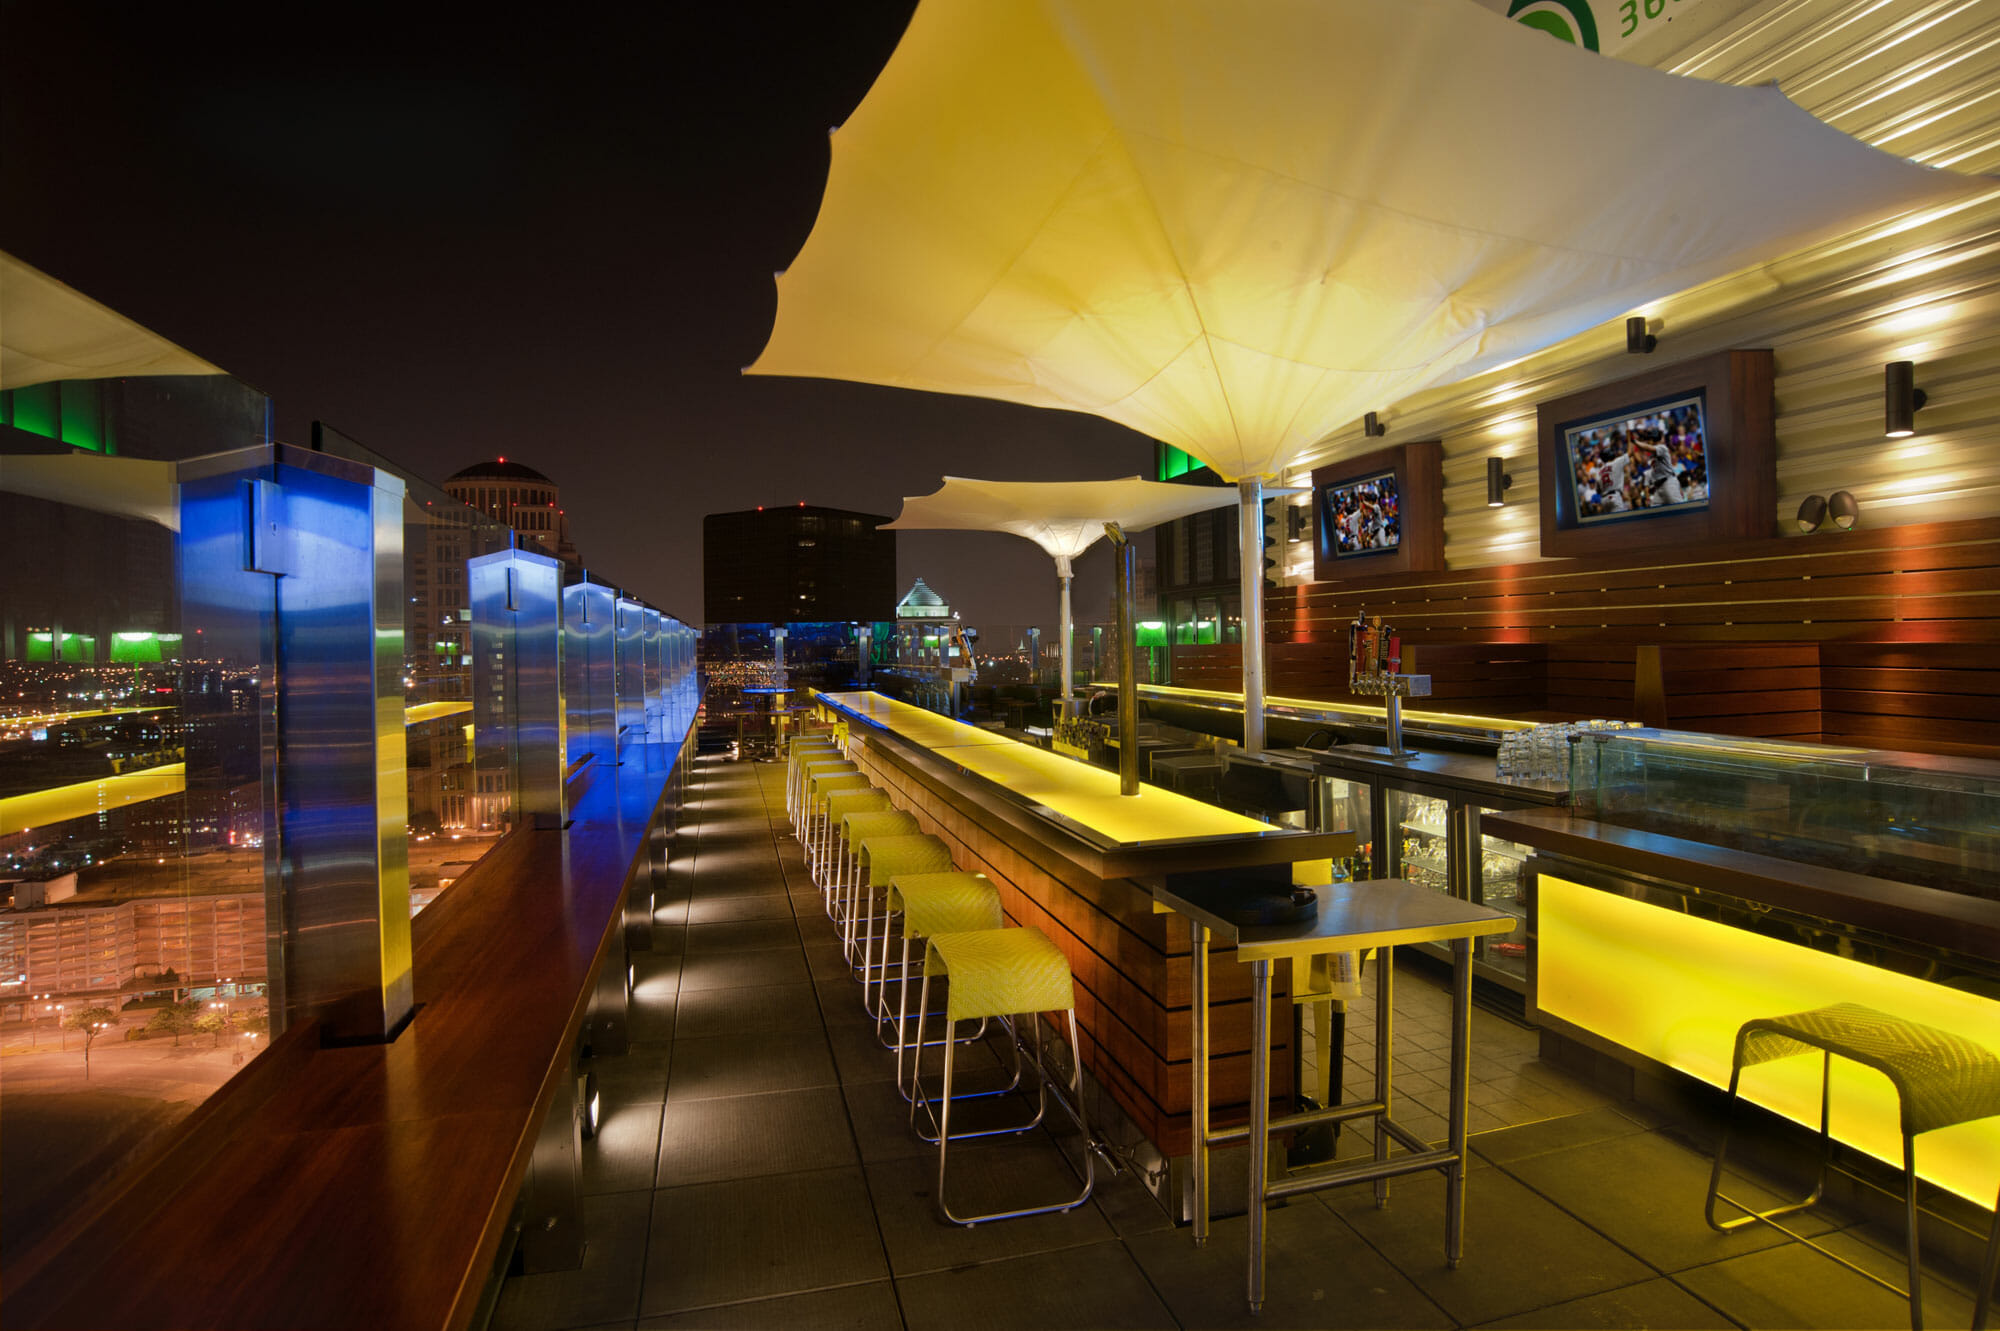 PARIC Corp. constructed a St. Louis rooftop bar in downtown St. Louis, MO